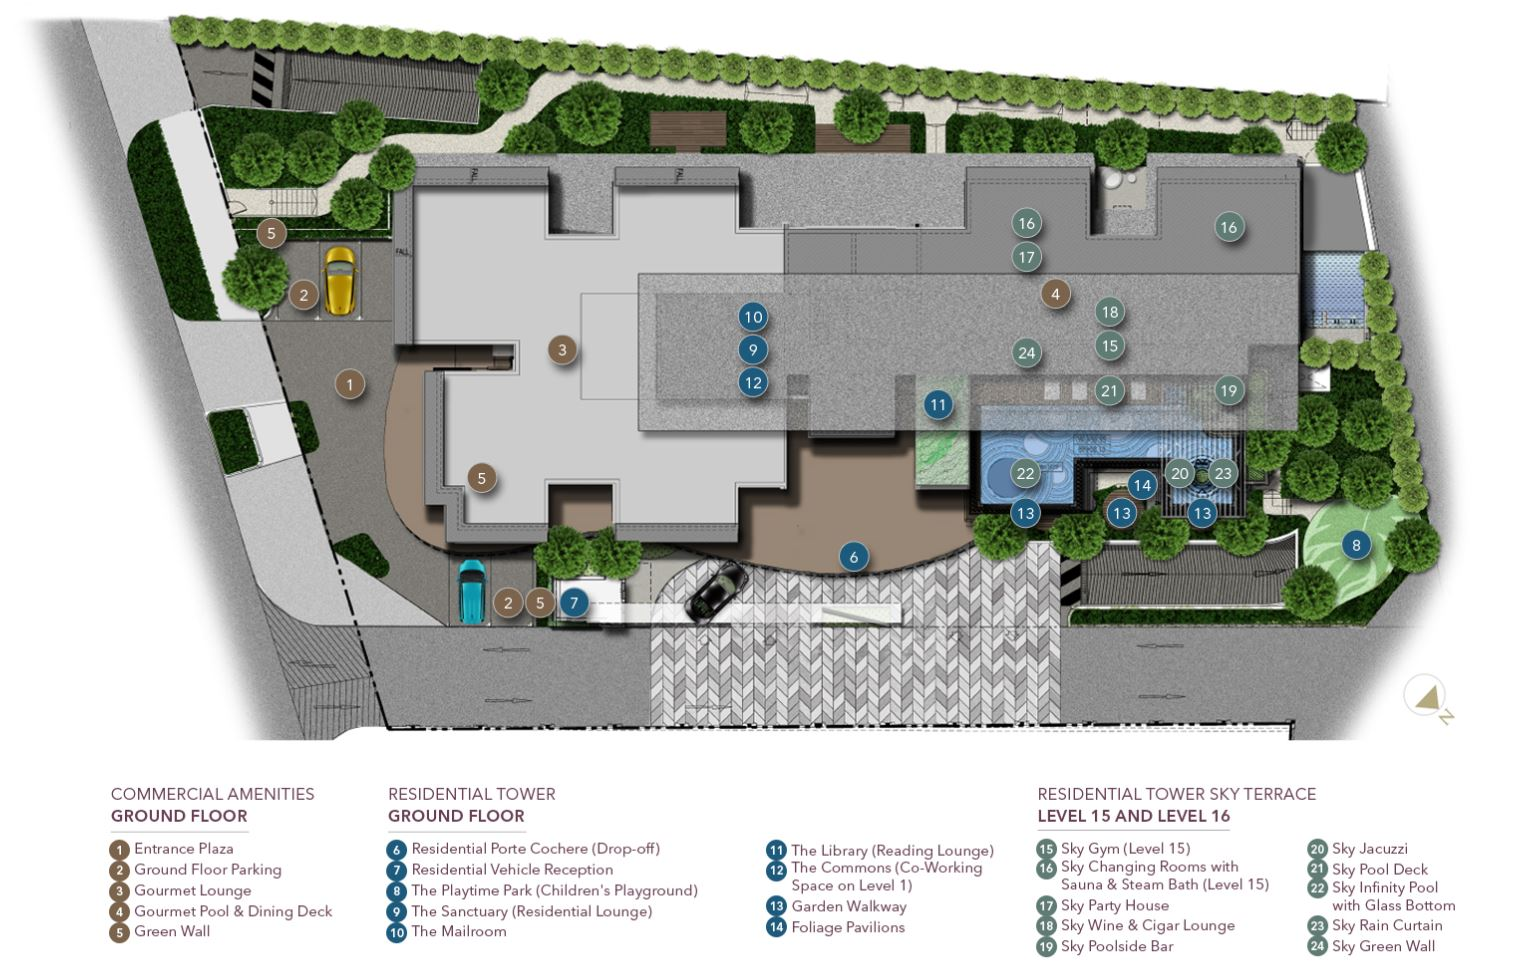 D1mension Site Plan Facilities